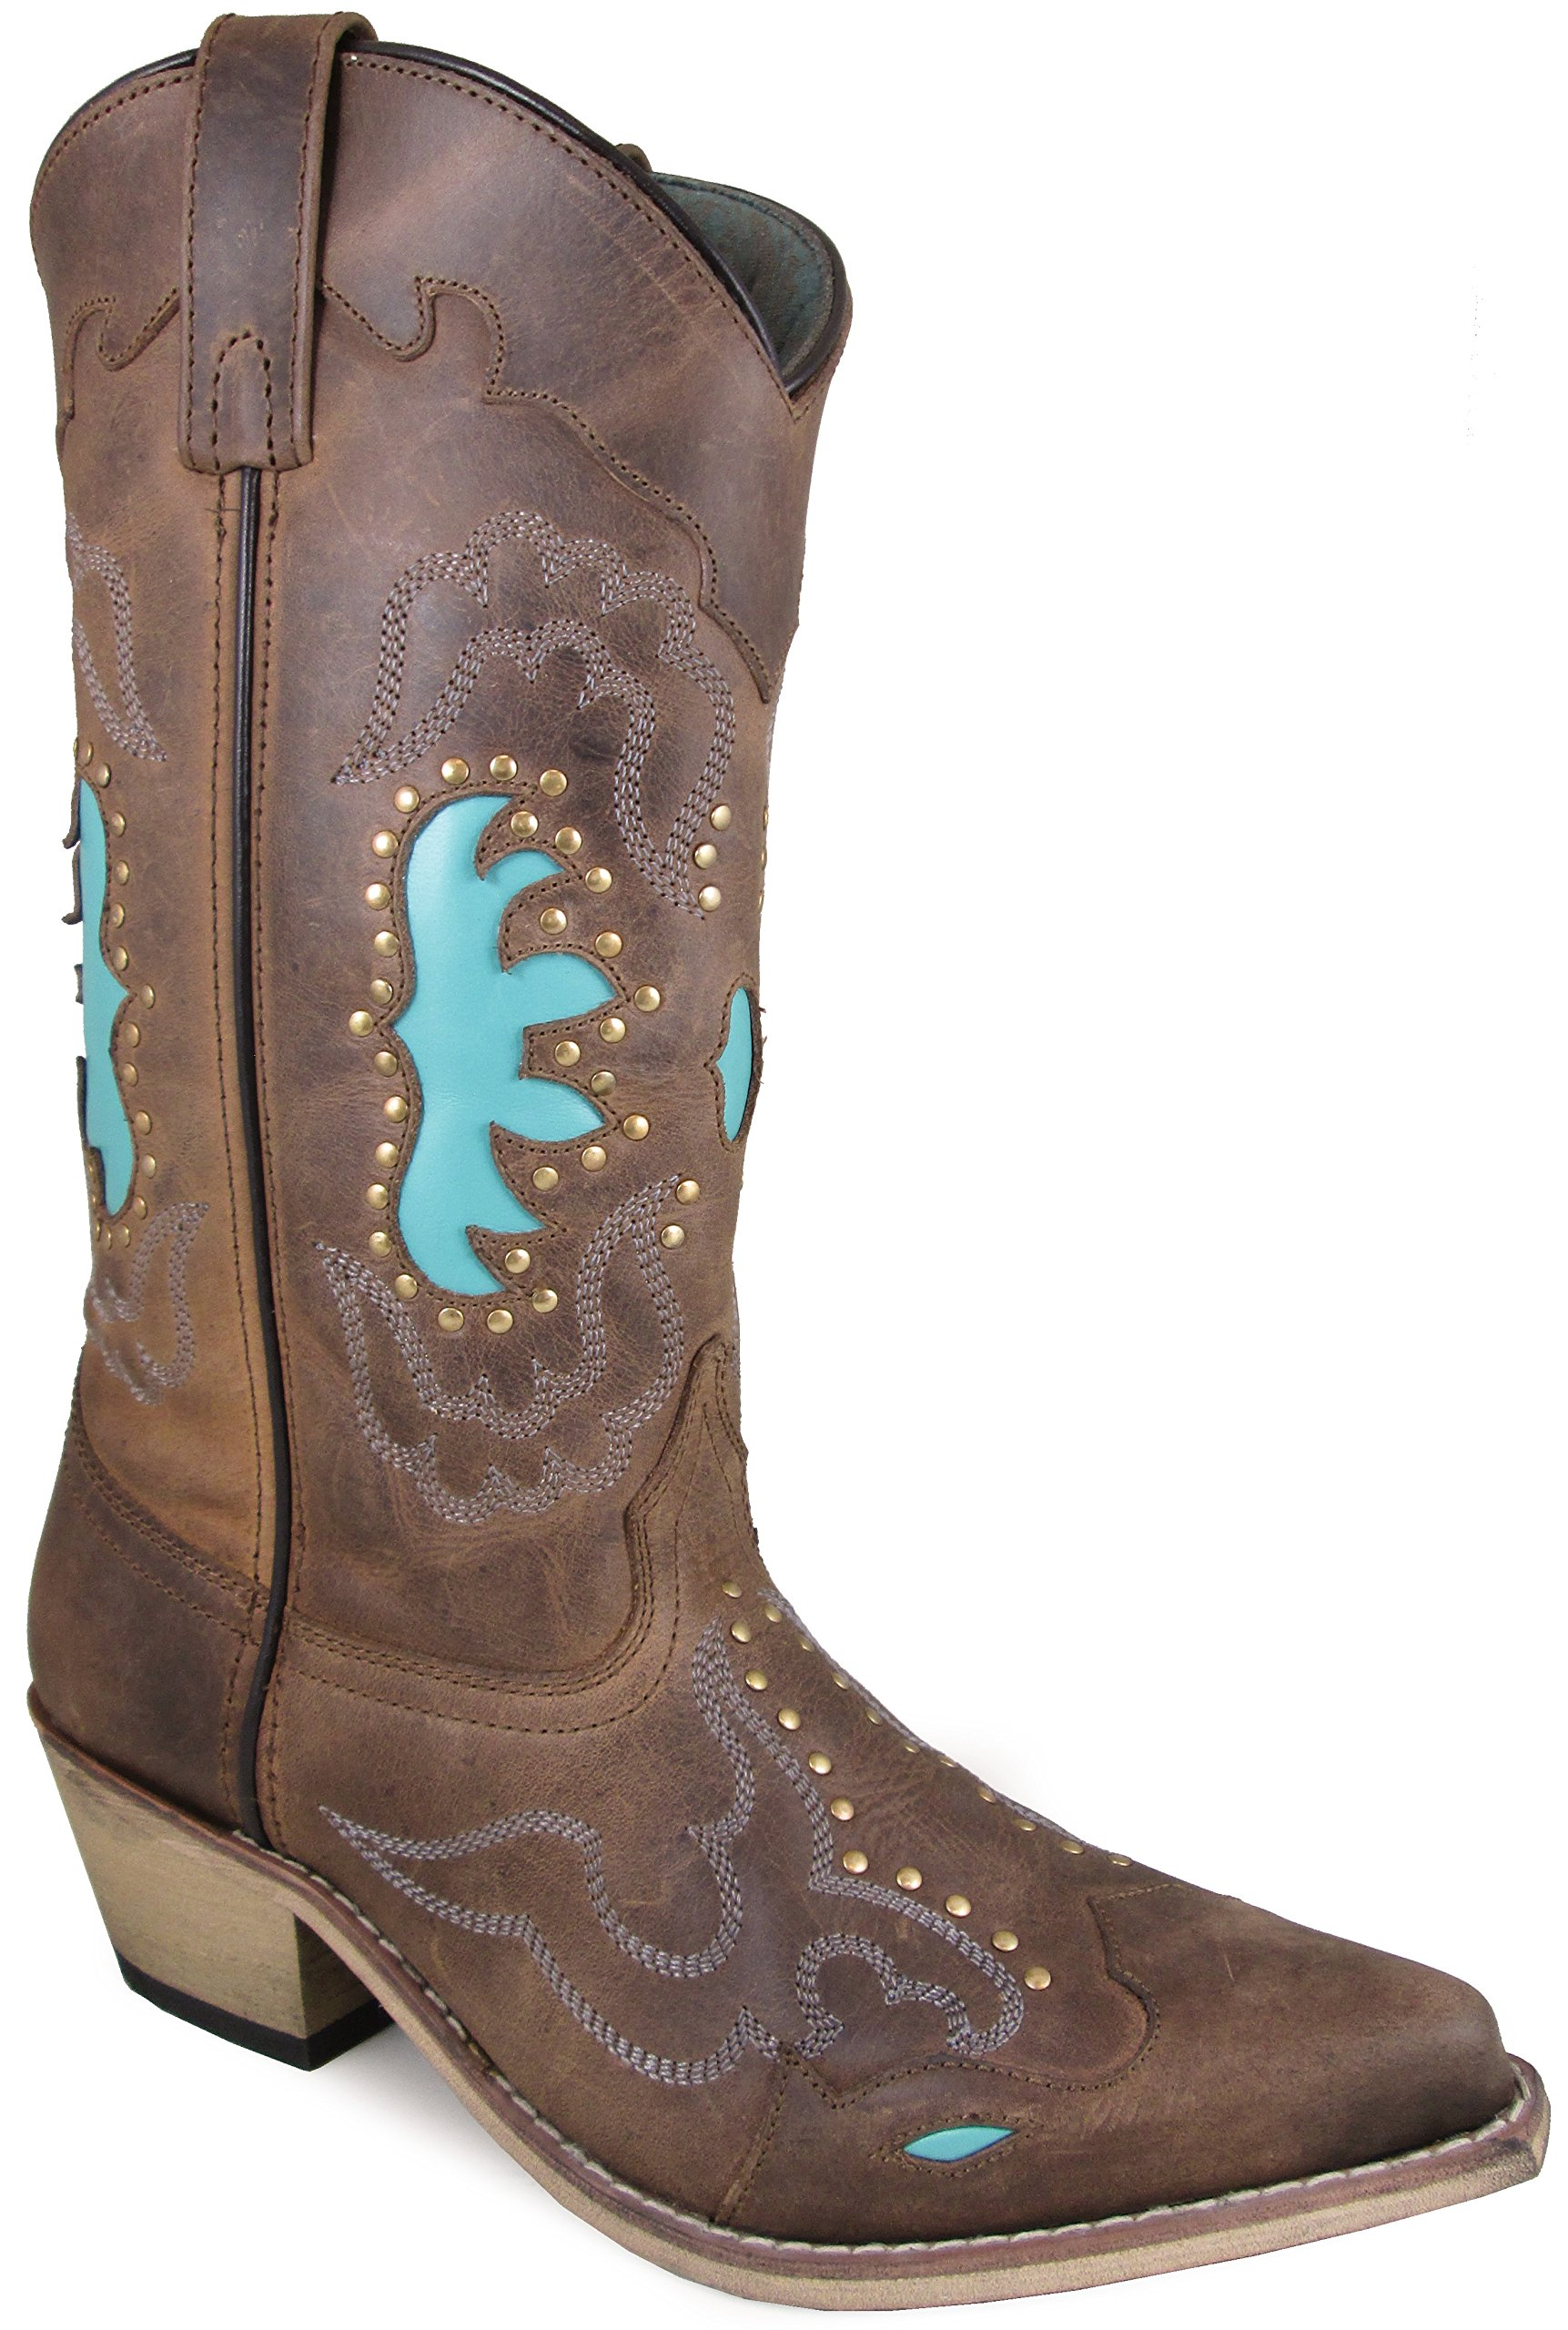 Smoky Mountain Women's Moon Bay Studded Design Snip Toe Brown Distress/Turquoise Boots 7M